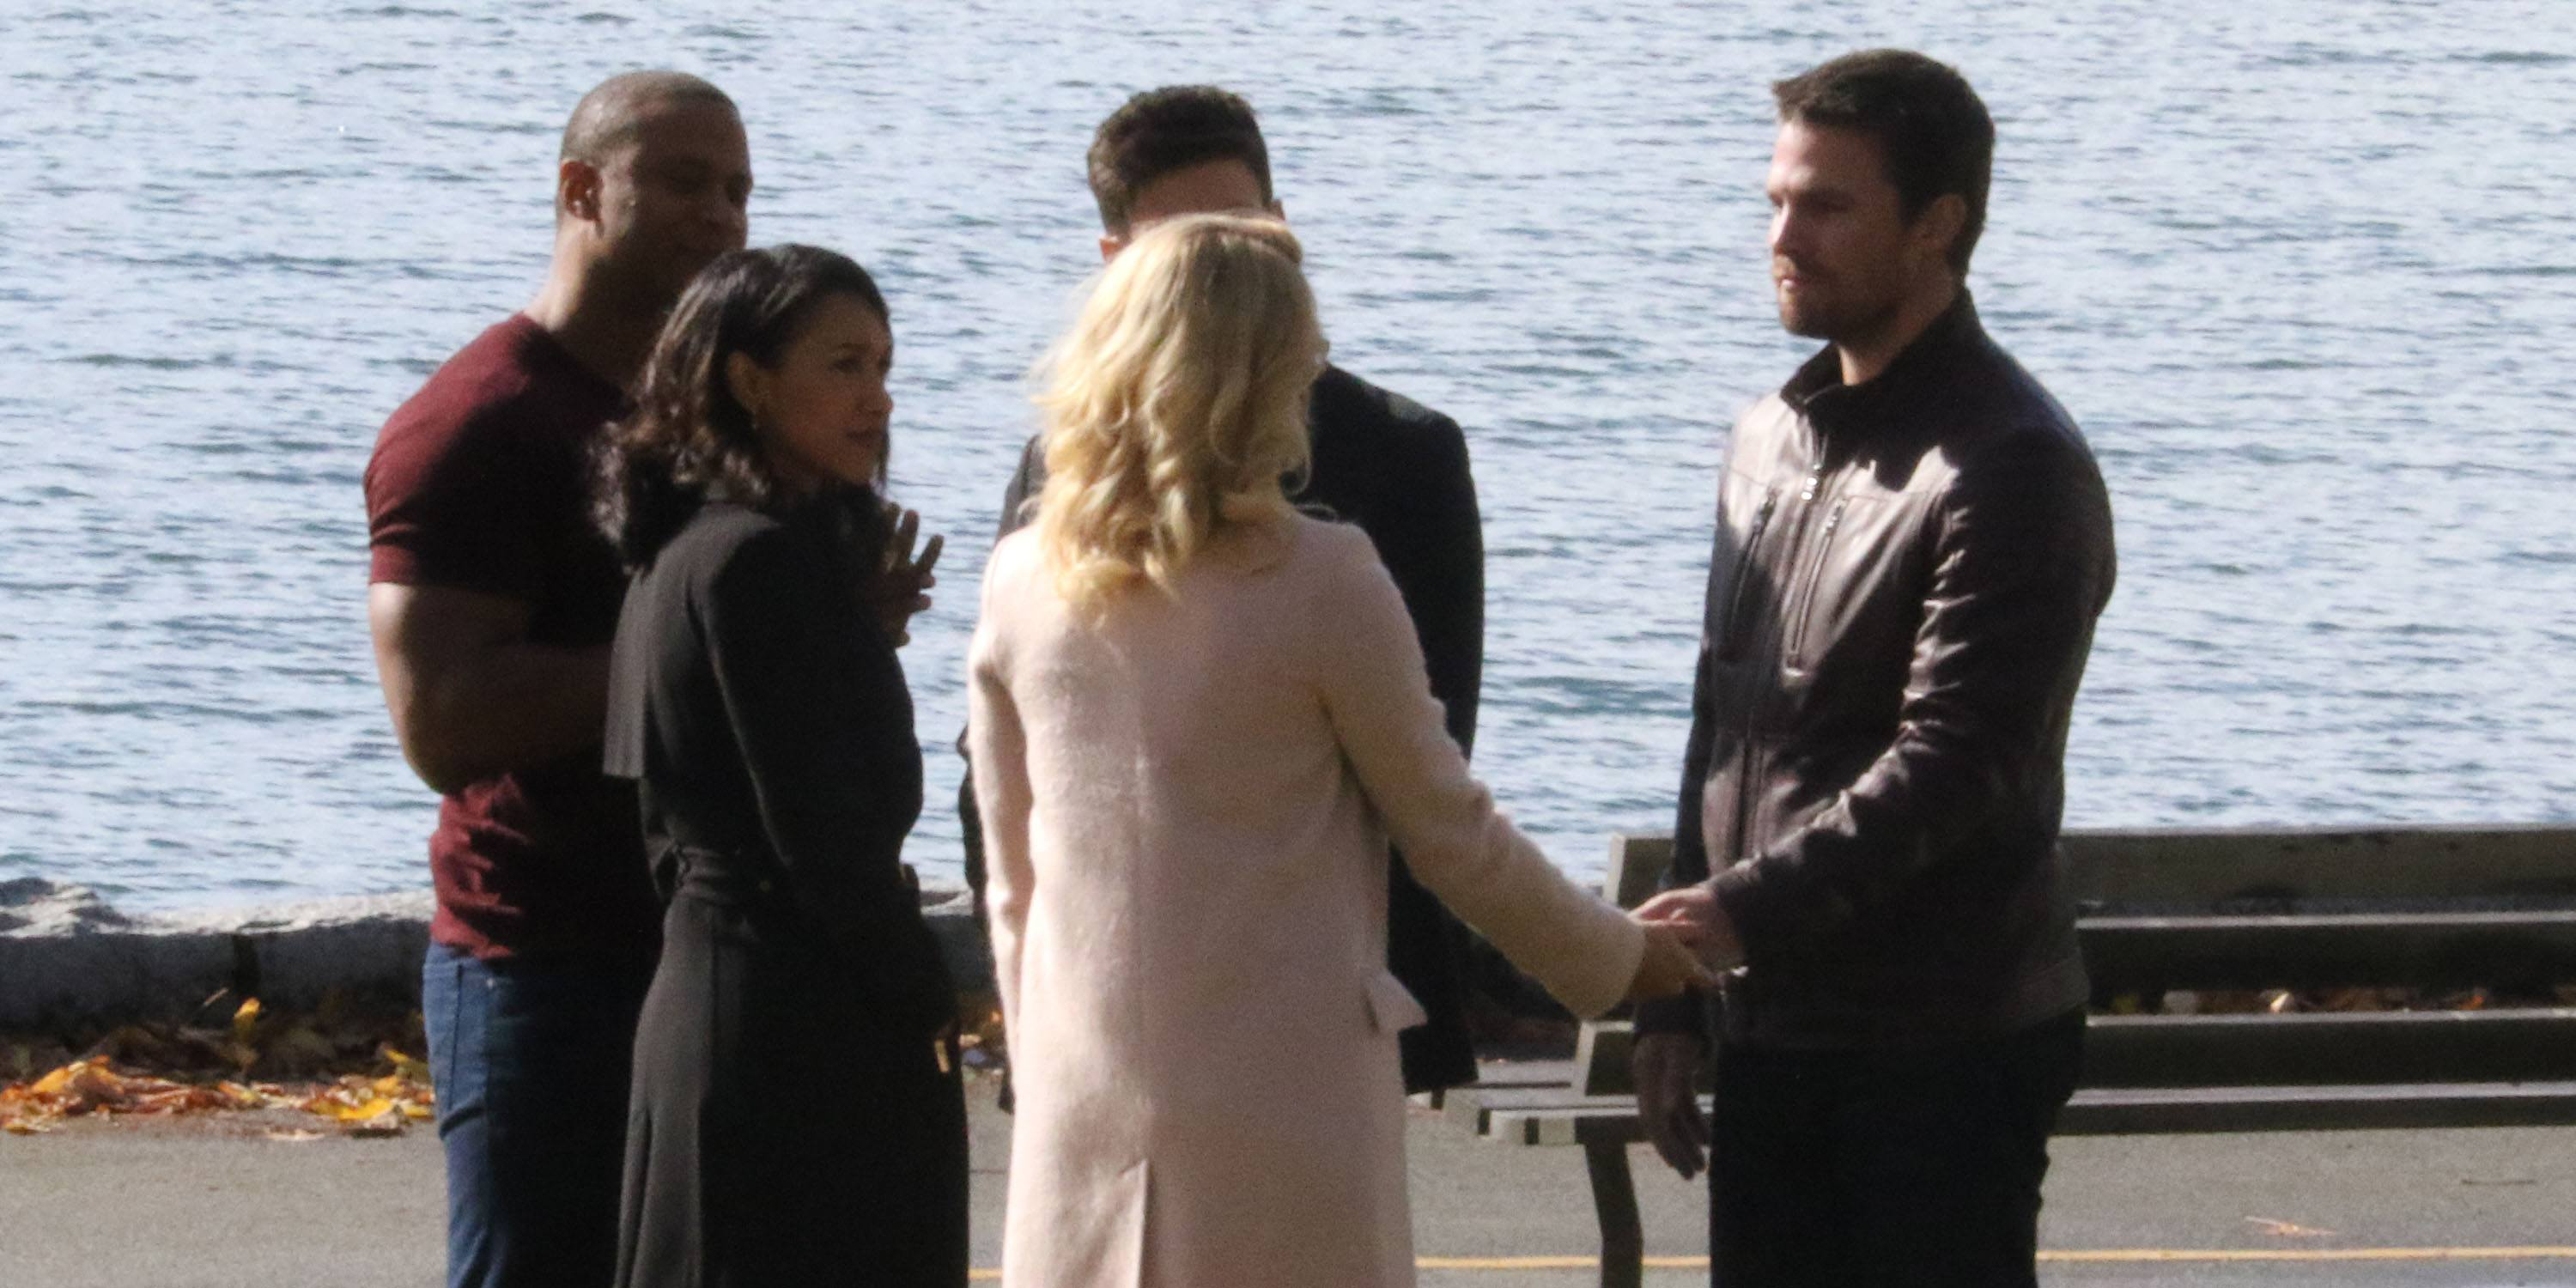 Arrow and Flash film dual wedding at Stanley Park for crossover episode (PHOTOS)